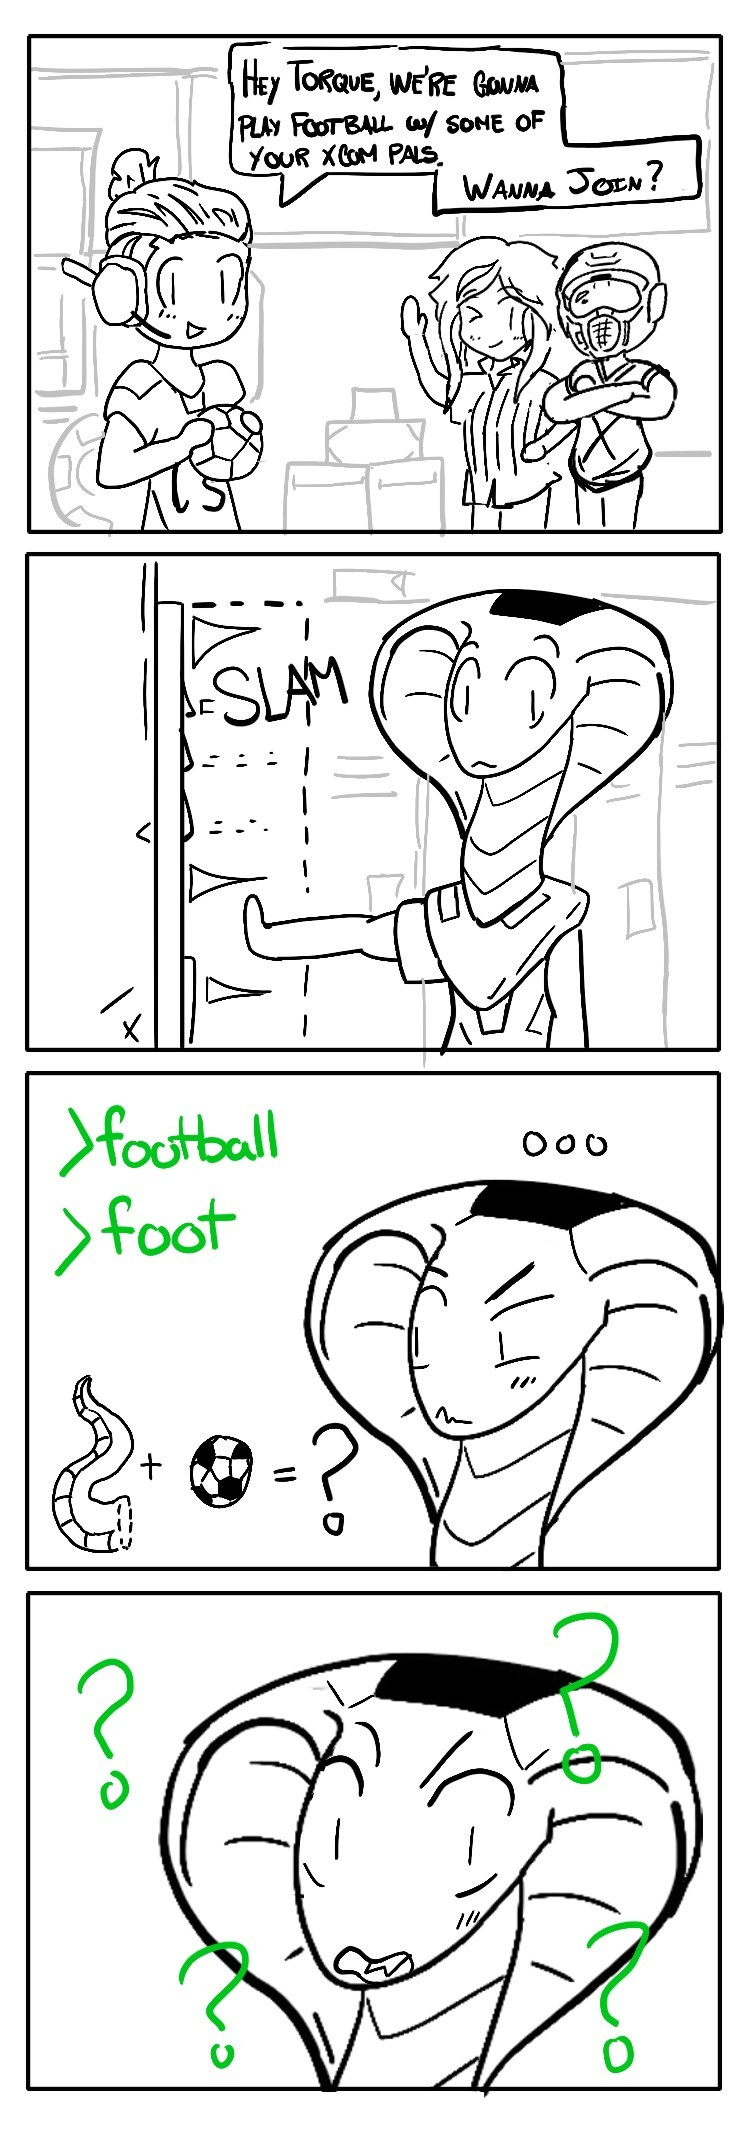 soccer. .. >with some of your XCOM pals So... The people who murdered her original ADVENT squad?